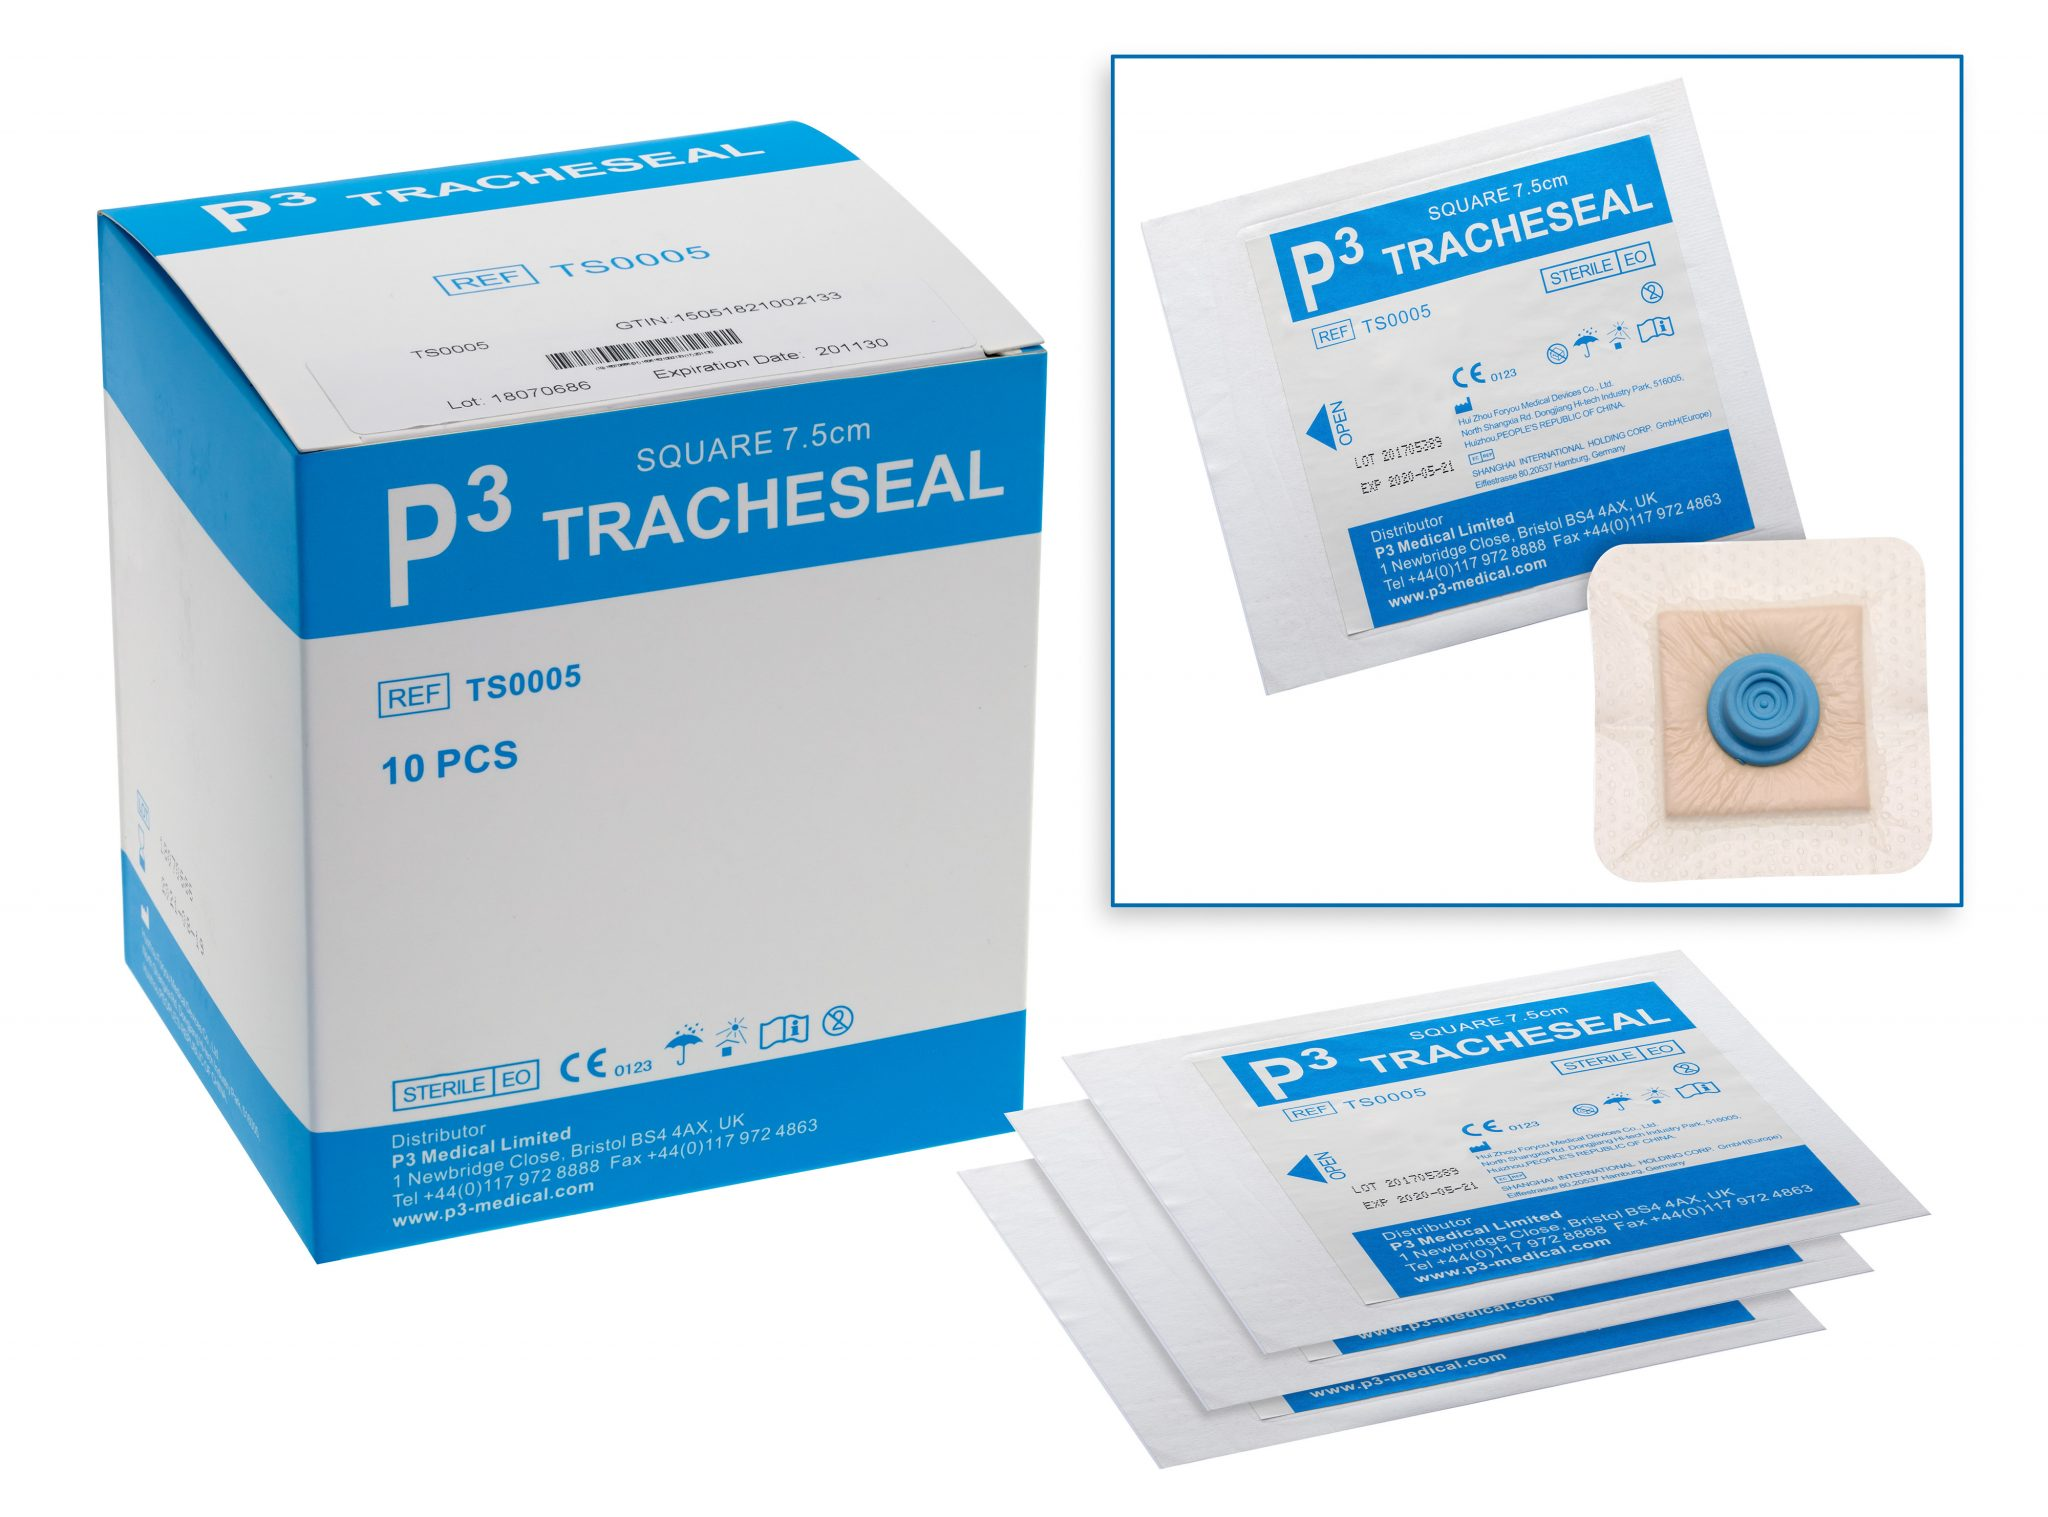 Tracheseal image